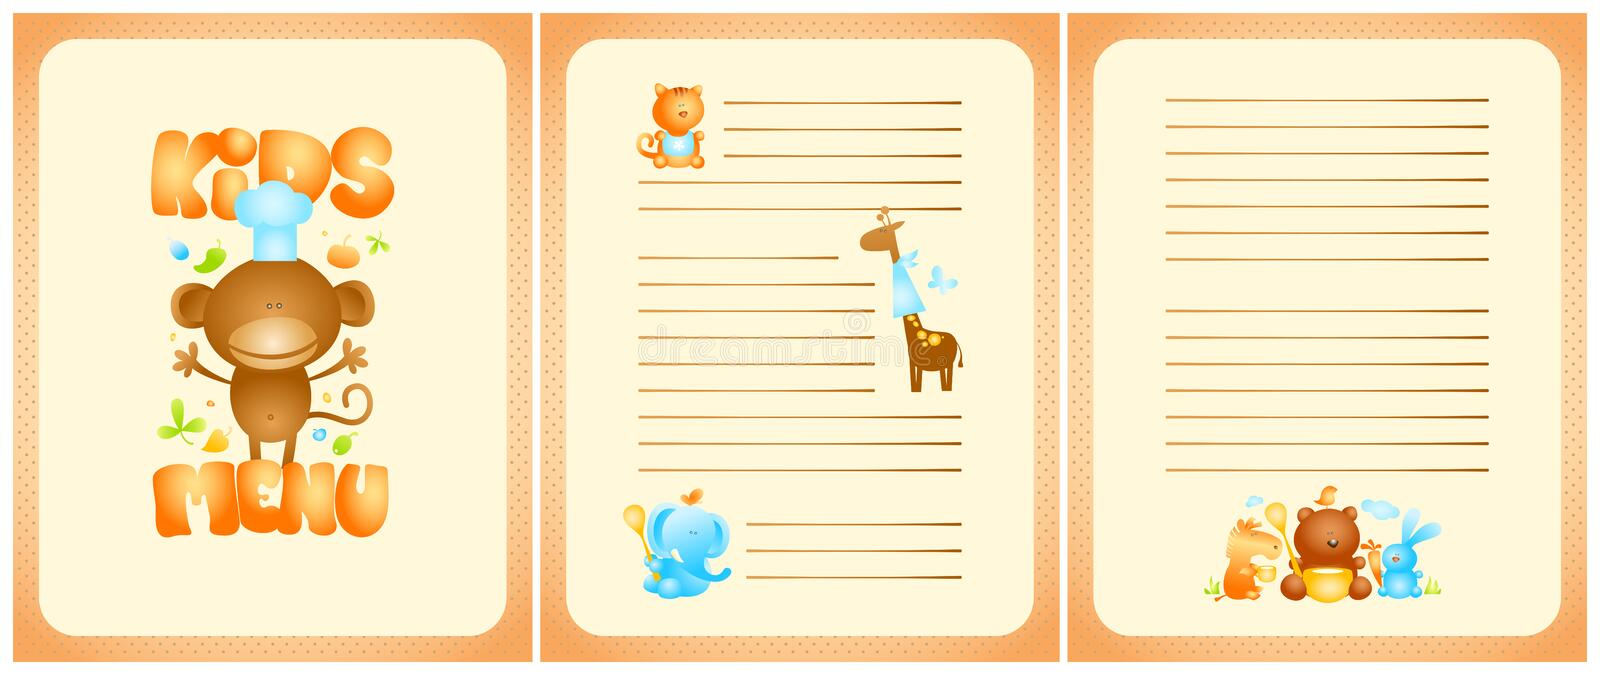 Funny kids menu list design with front page and pages for dishes, with cute animals royalty free illustration